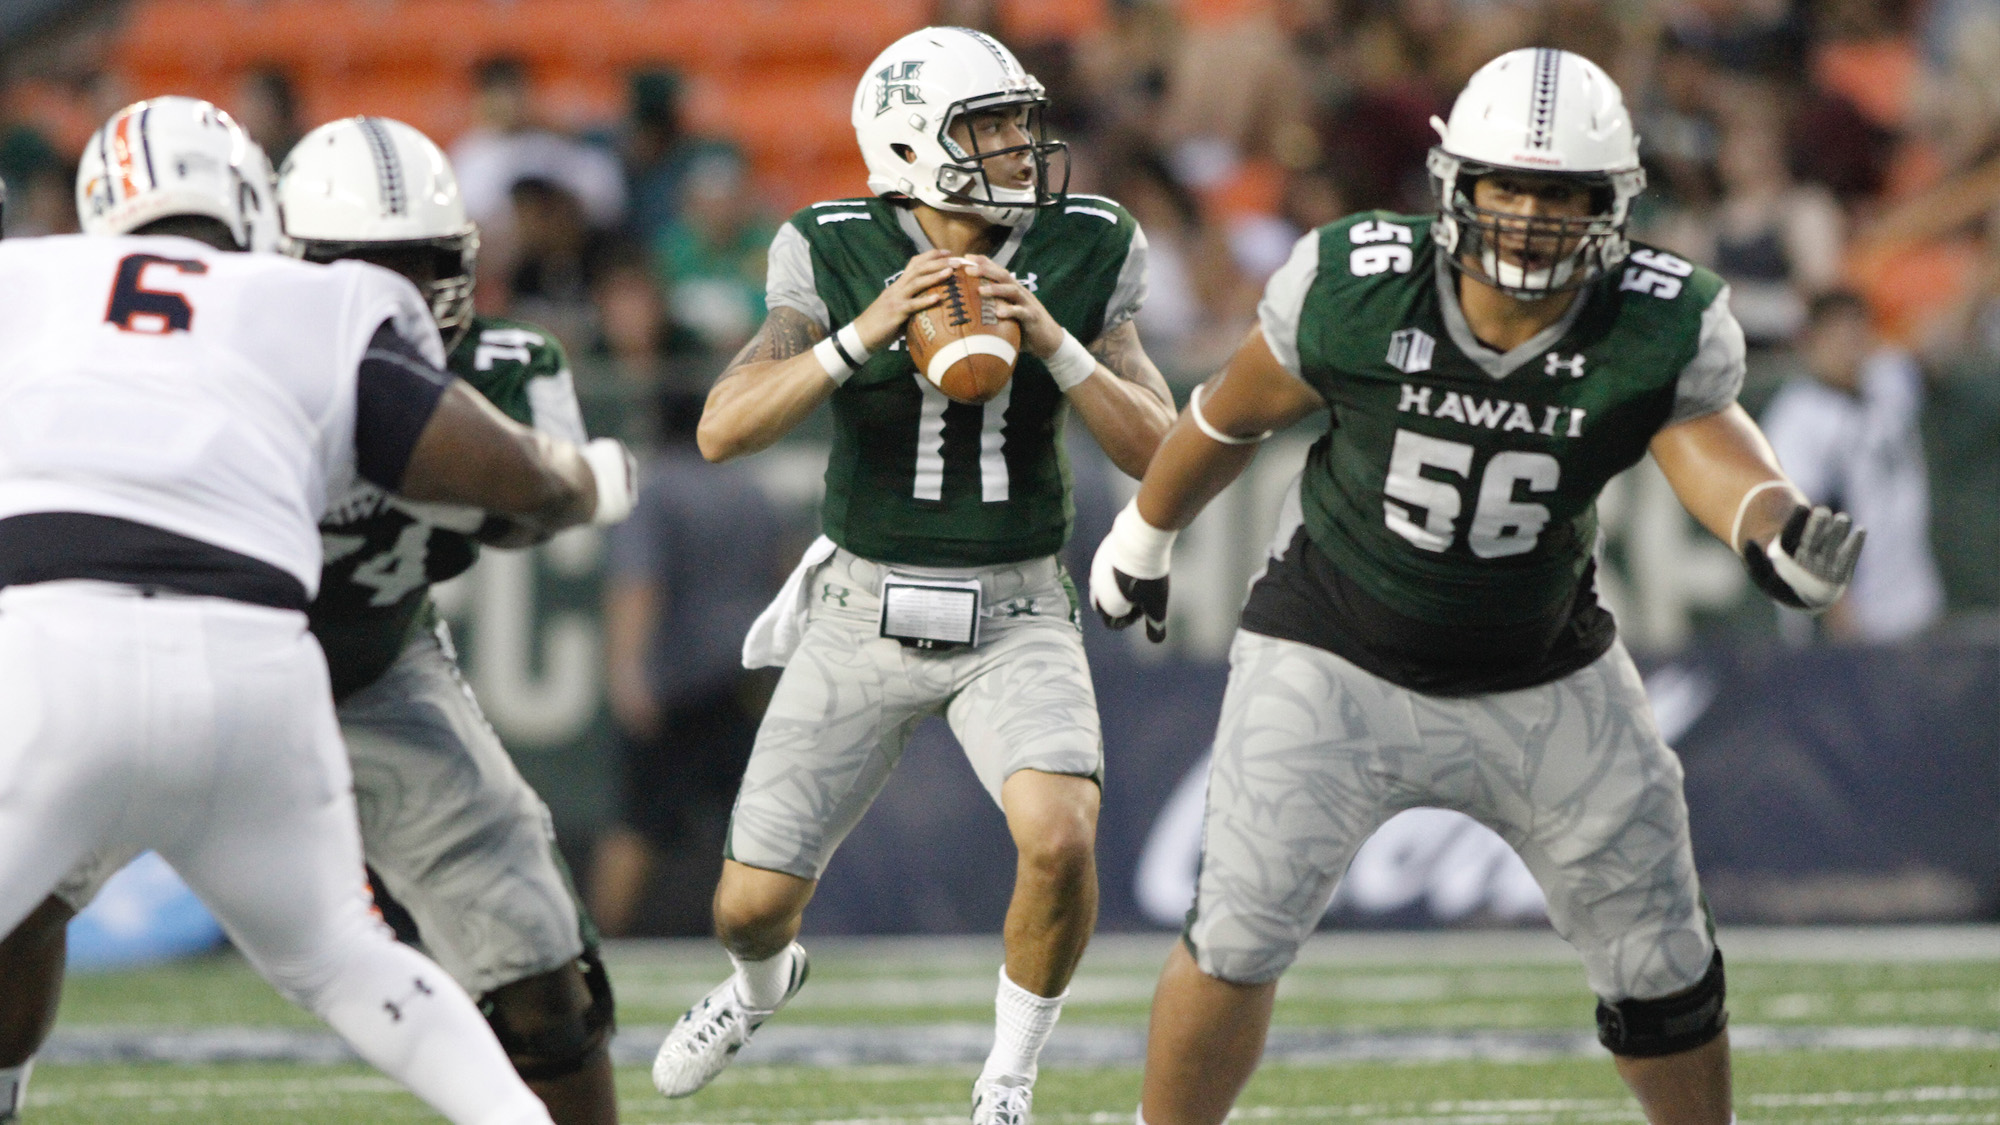 Ikaika Woolsey Football University Of Hawai I At Manoa